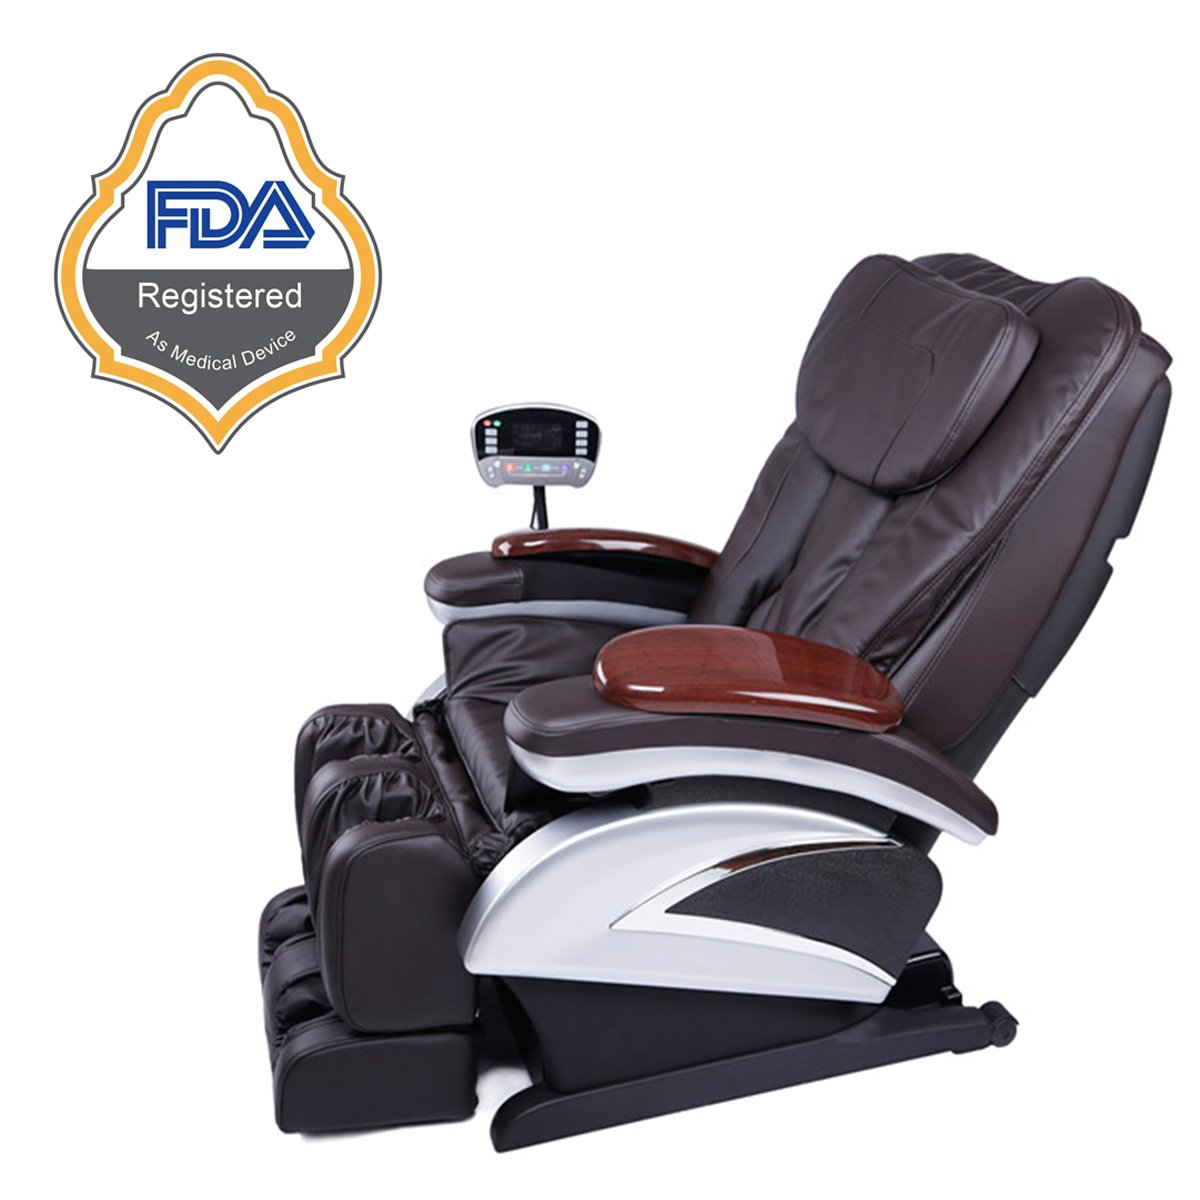 Professional massage chairs - Amazon Com Electric Full Body Shiatsu Massage Chair Recliner W Heat Stretched Foot Rest 06c Black Health Personal Care